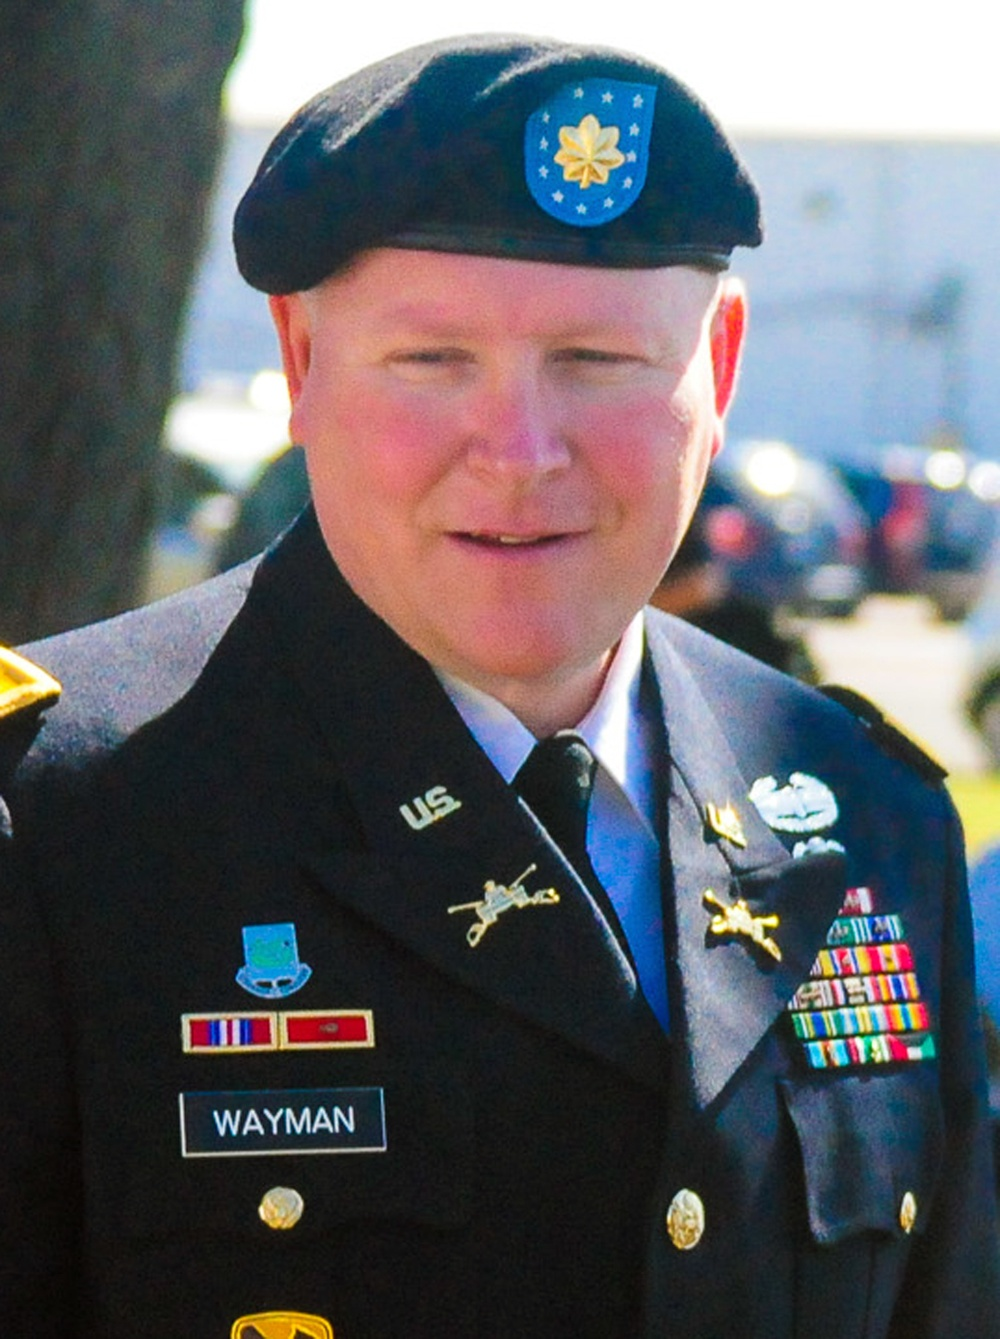 Death of a Fort Hood Soldier